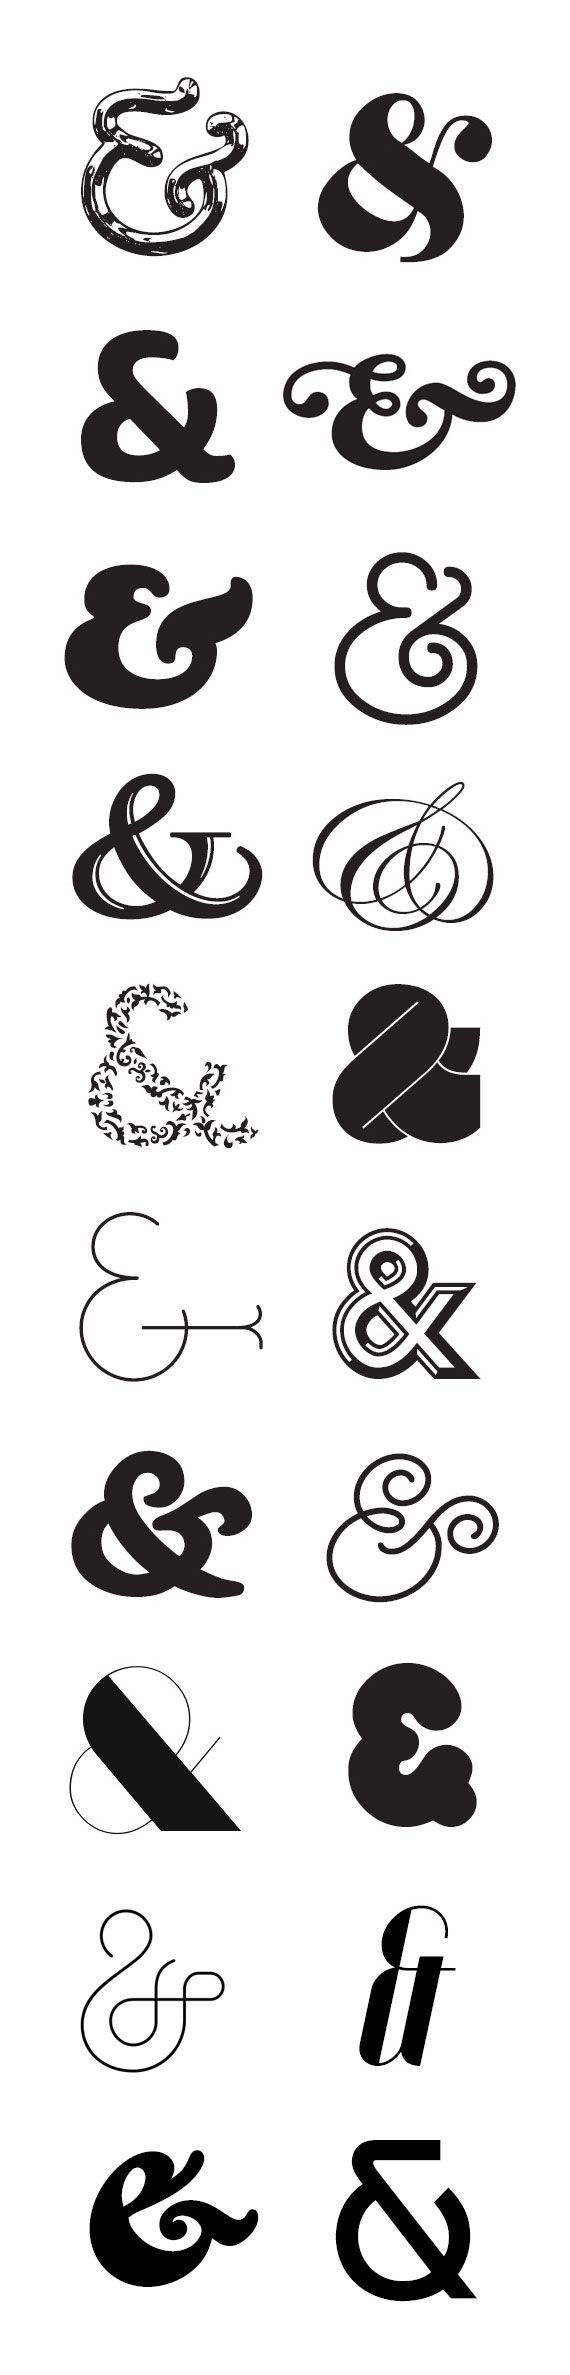 The best images about typography on pinterest negative space